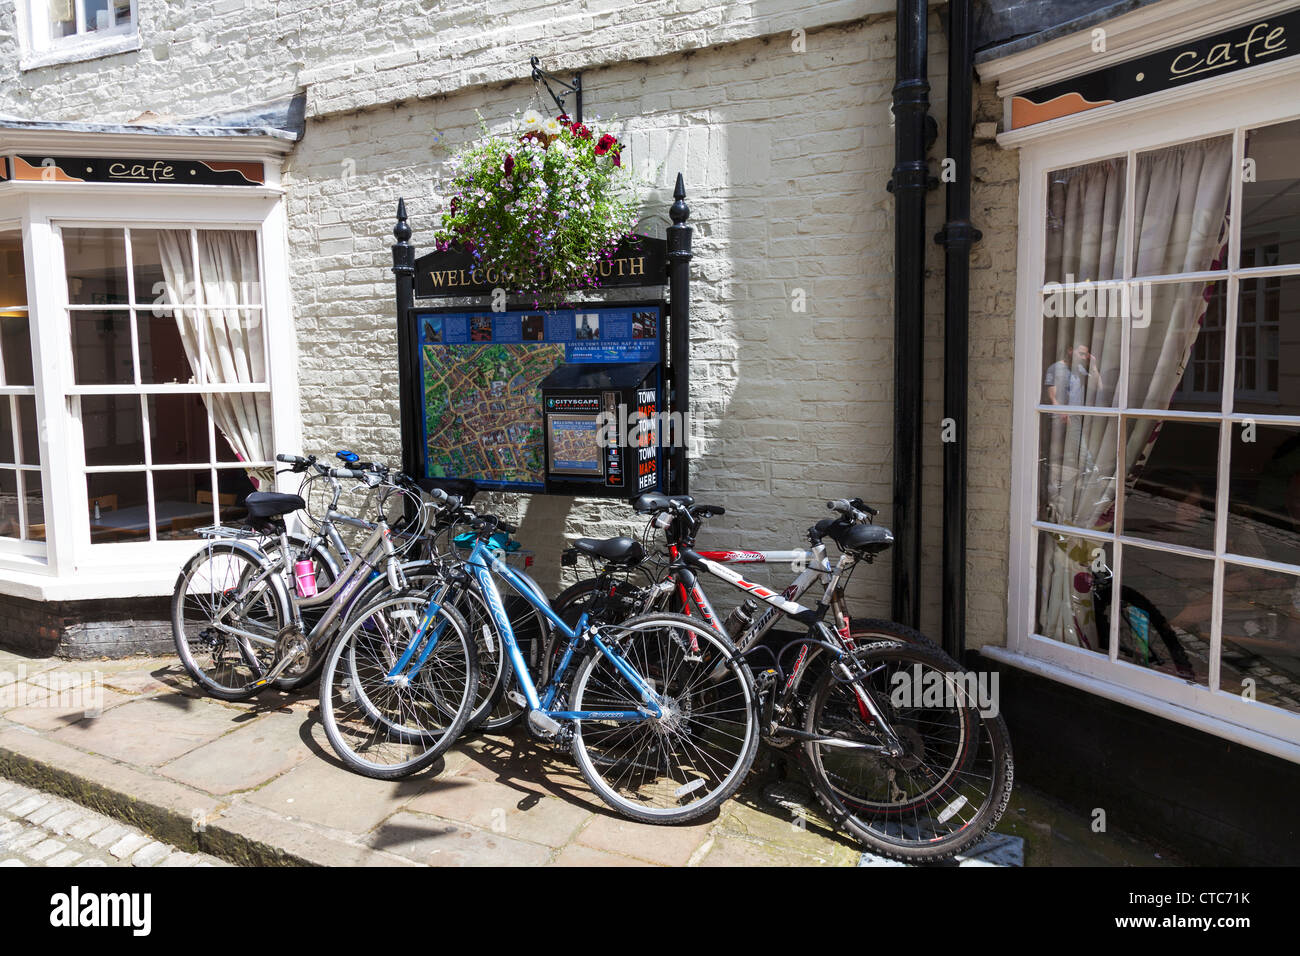 A pile of bikes pushbikes leant against wall and sign outside Cafe in Louth, Lincolnshire - Stock Image